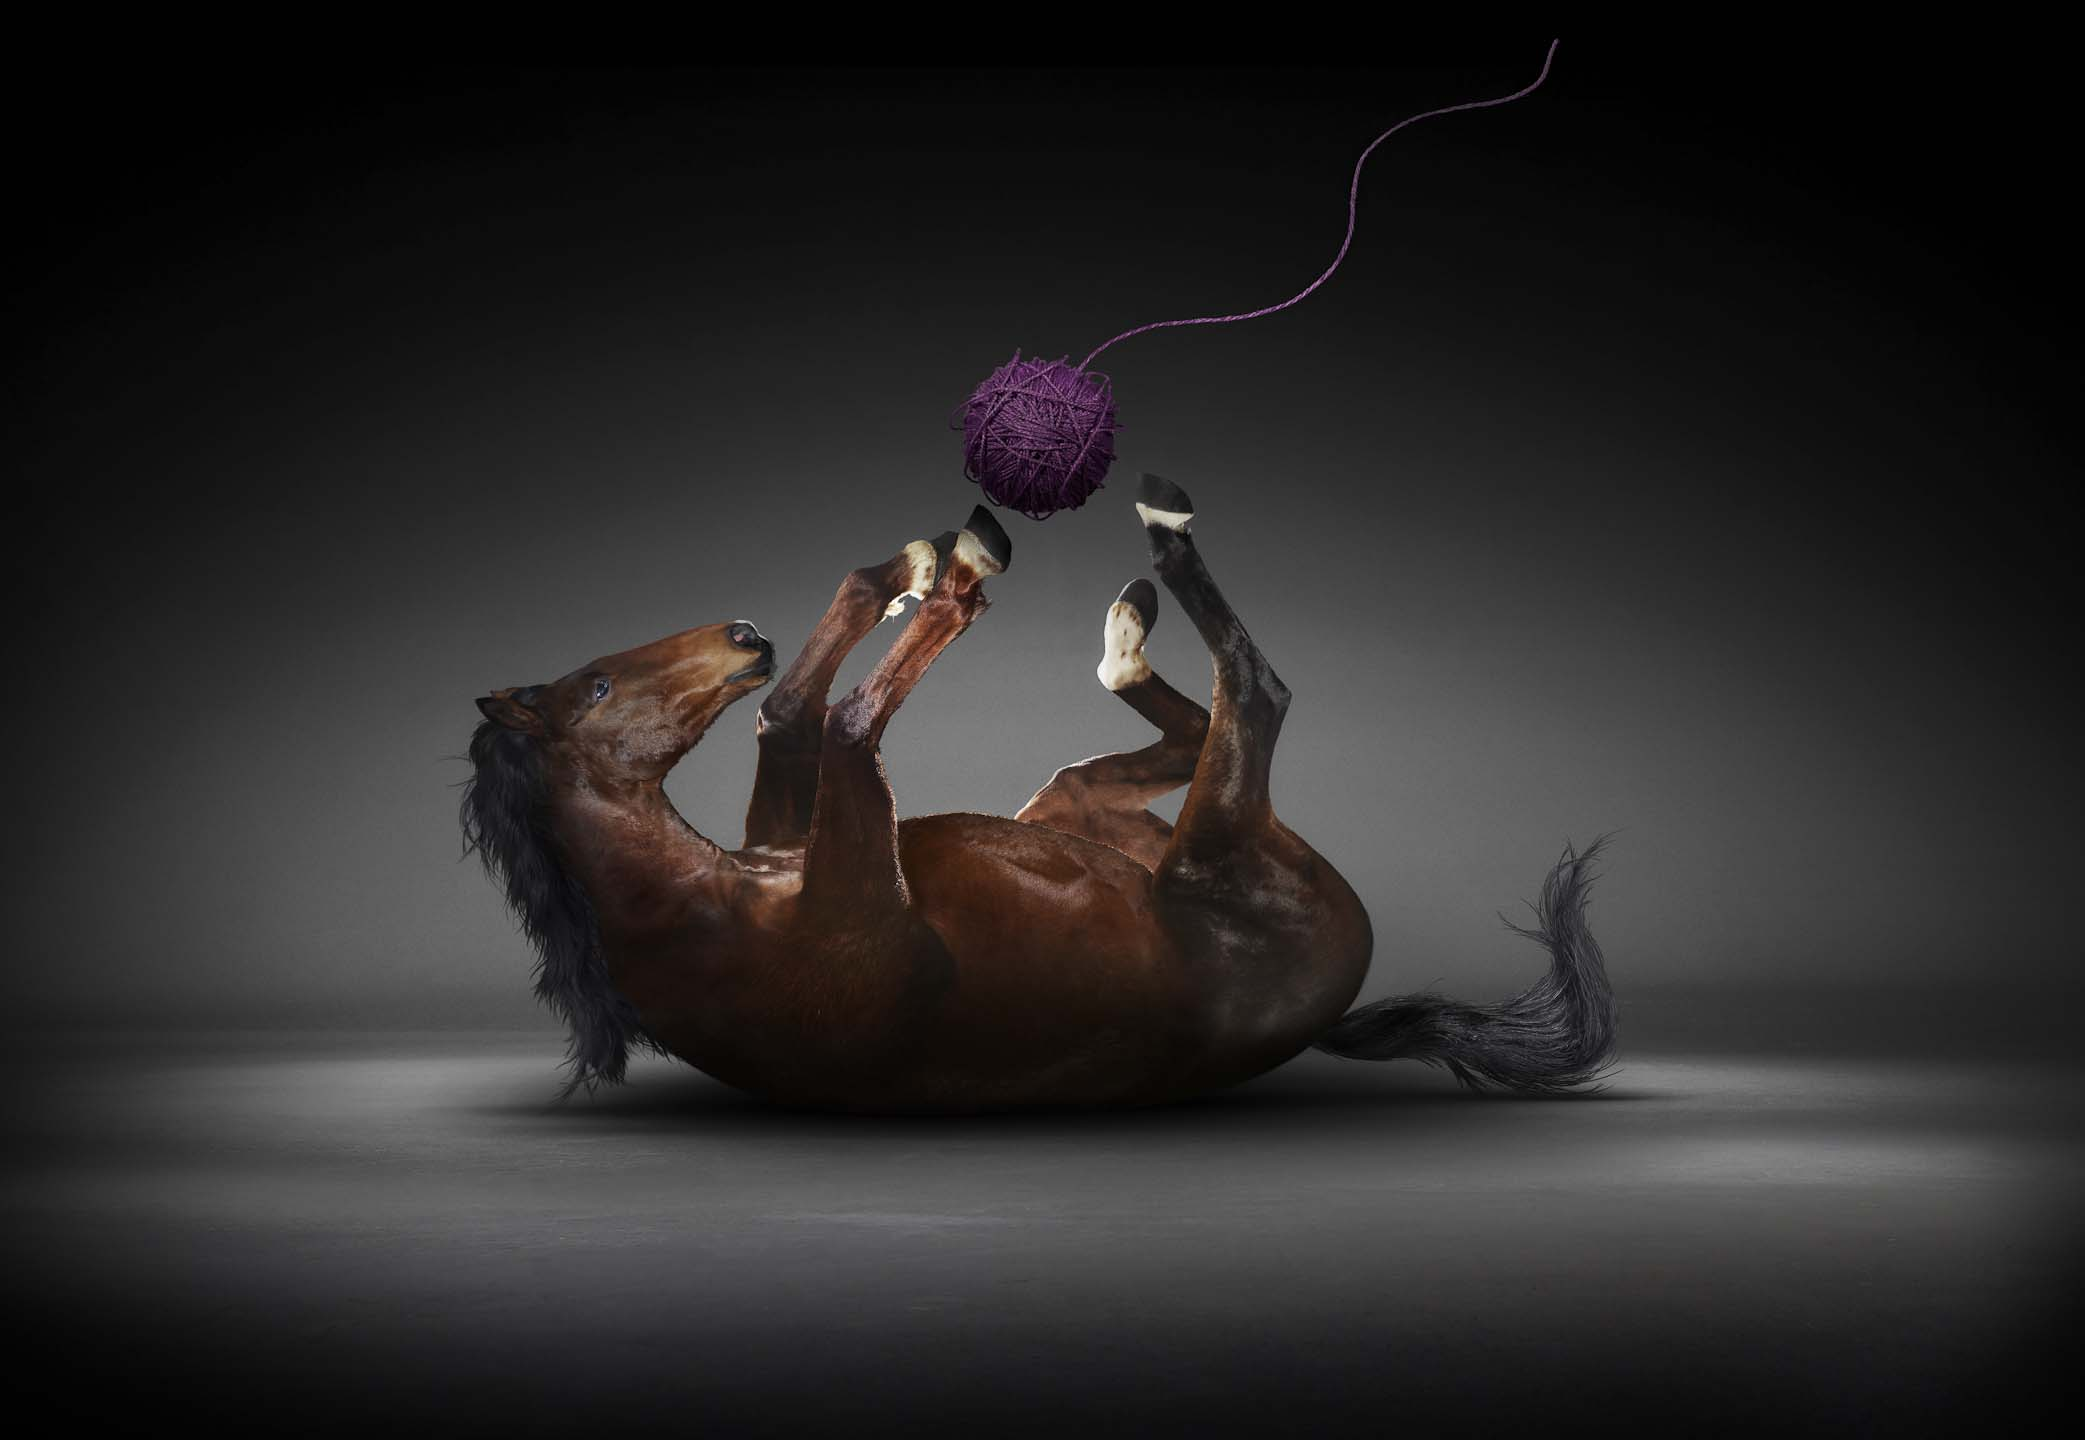 Alex Howe animal horse playing with string ball like cat in dark studio retouch